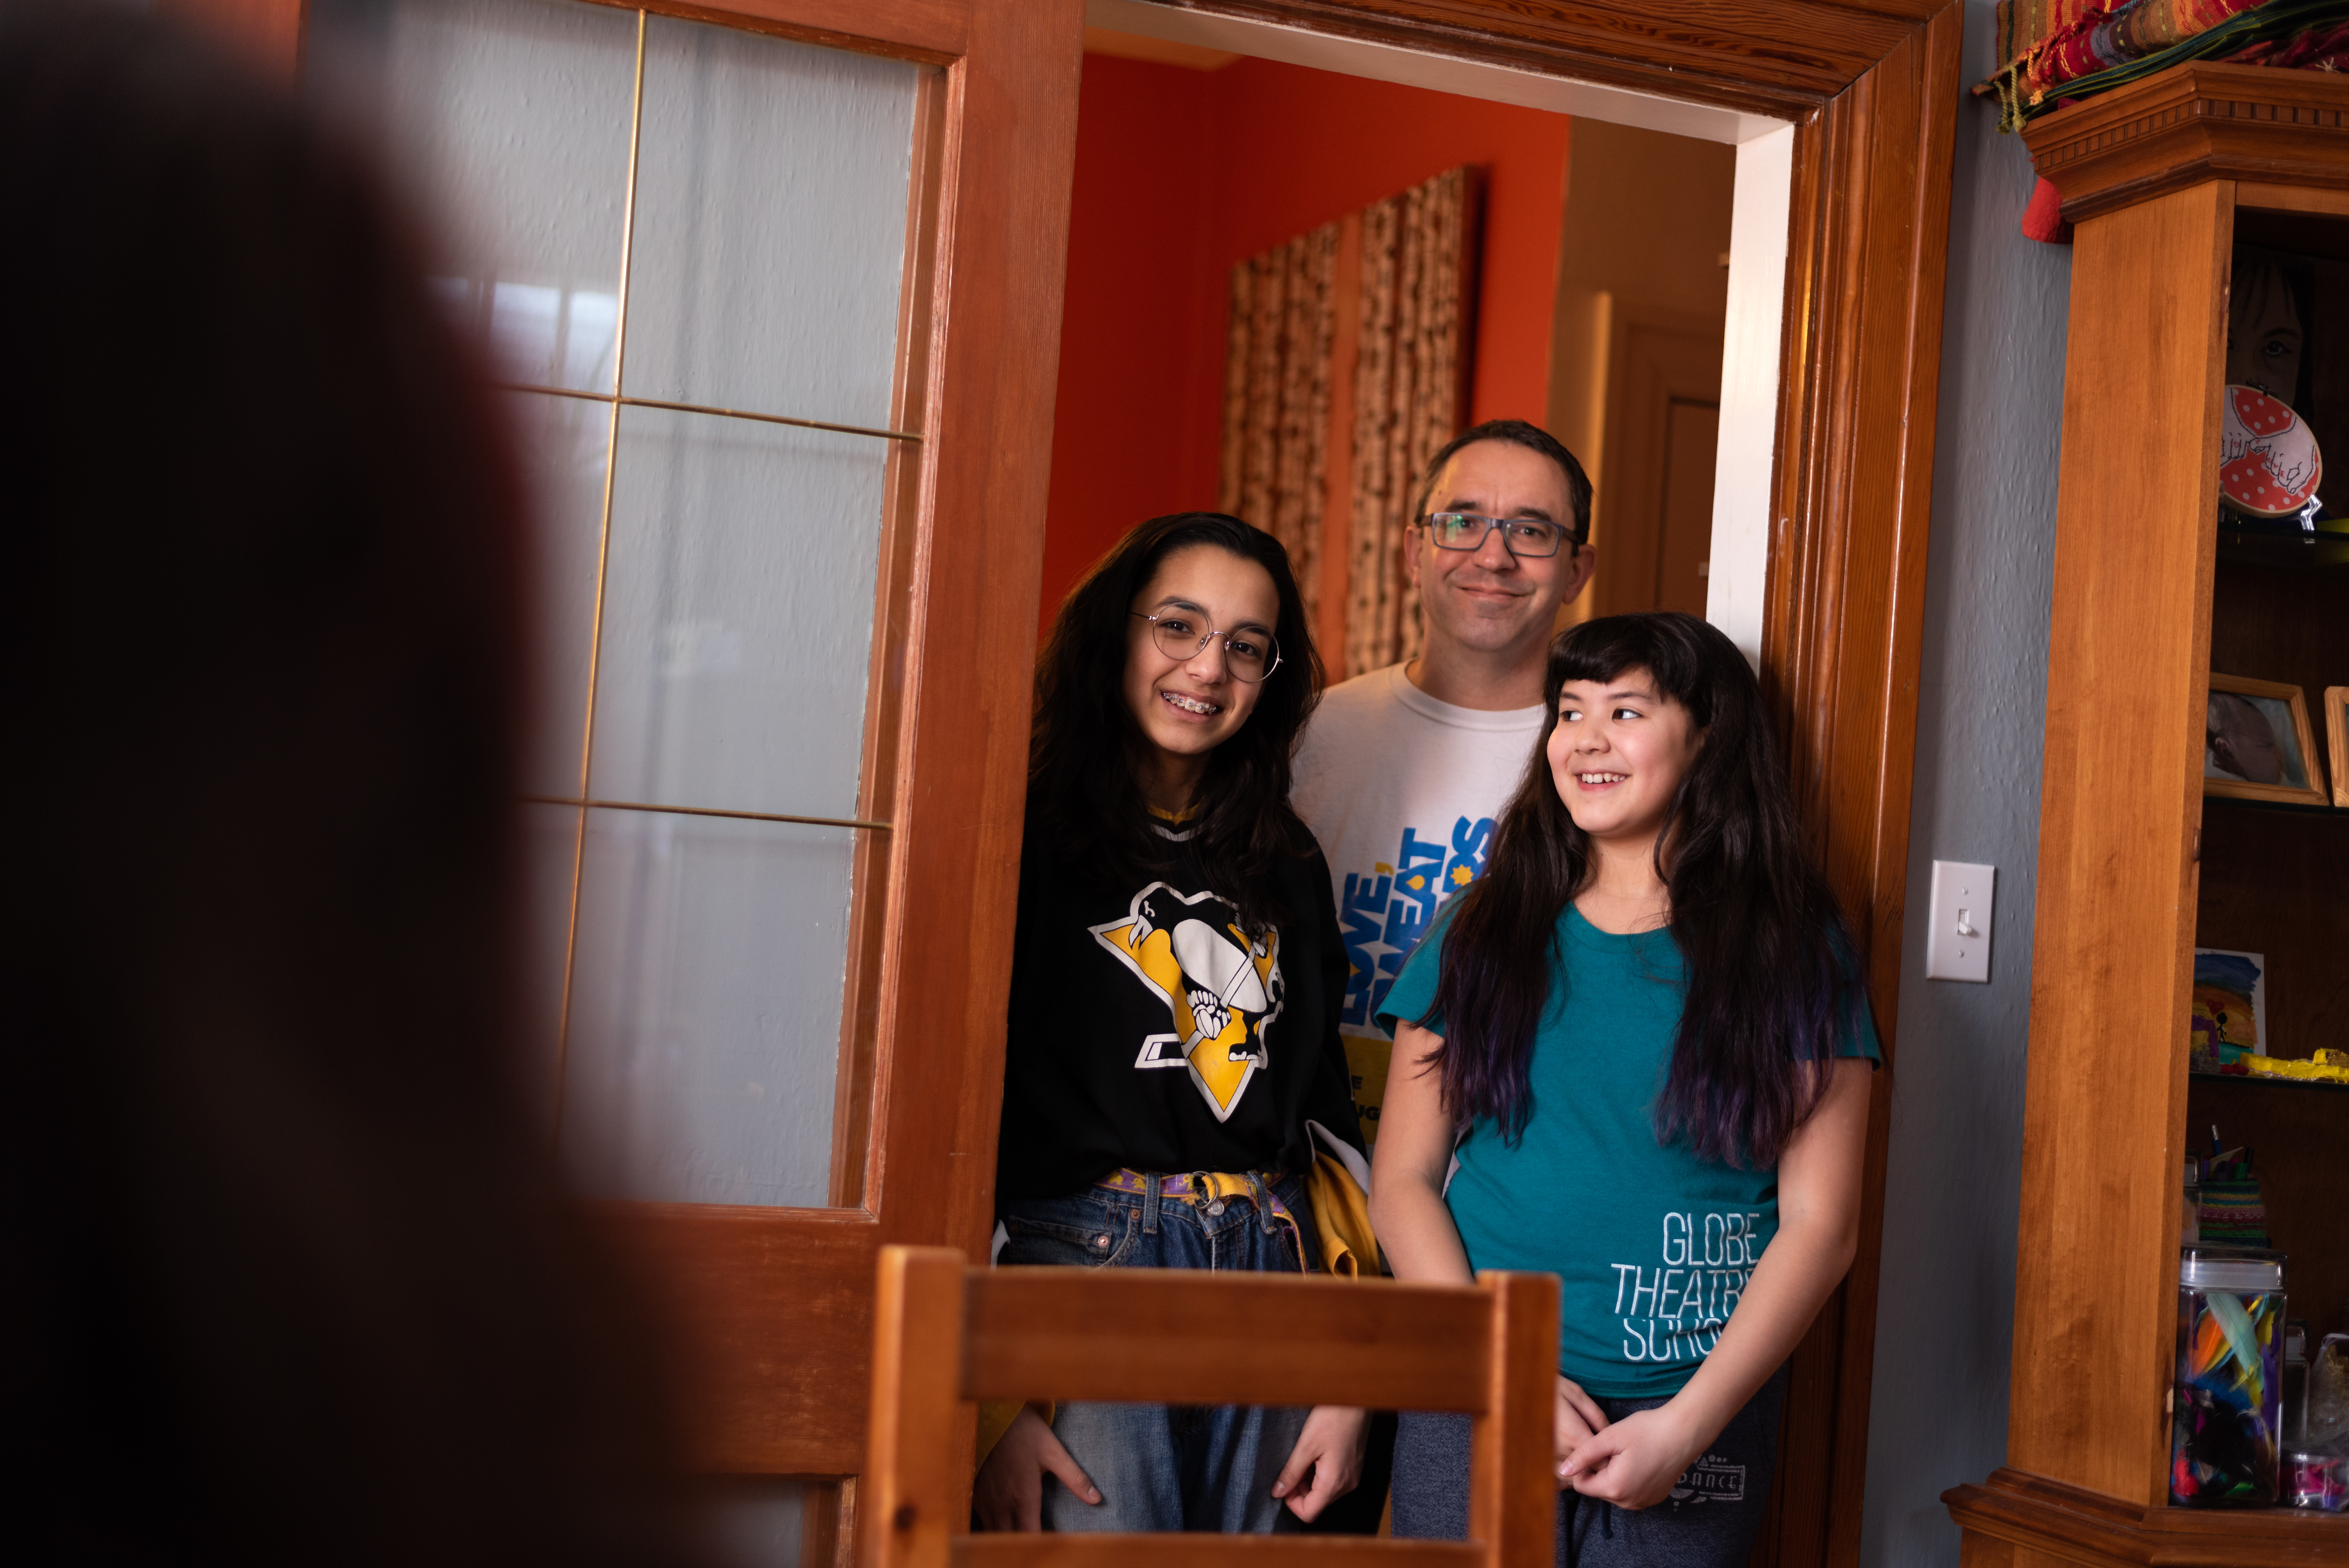 Pictured (left to right) is Kris Alvarez's daughter Zo' James, husband, Eric James, and daughter Iris James at their home in Regina (Michael Bell).